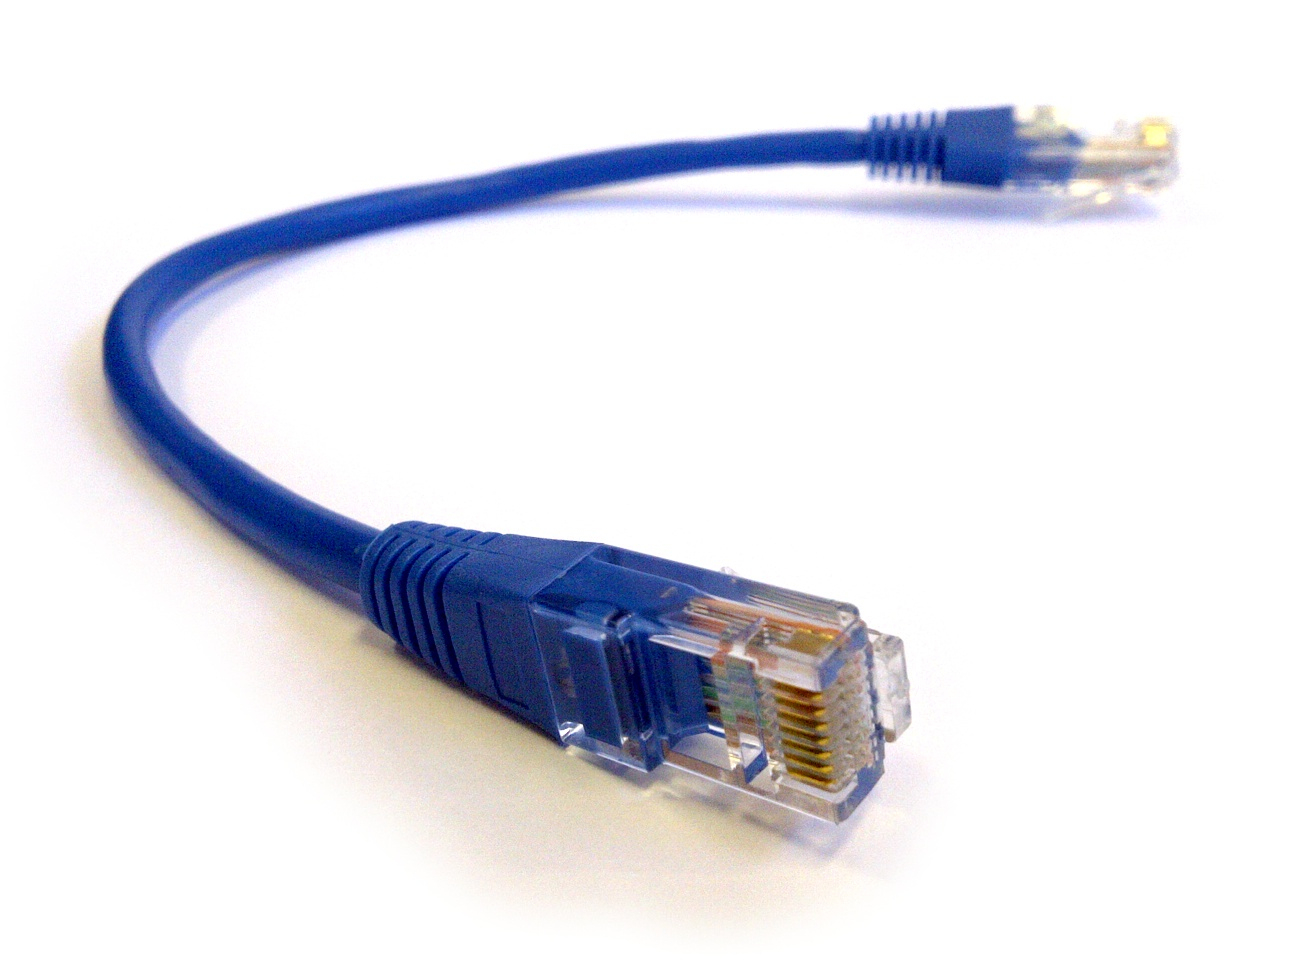 Null Modem Cable Wiring Diagram Cat 5 Cable | Wiring Library - Usb Cat 5 Wiring Diagram And Crossover Cable Diagram